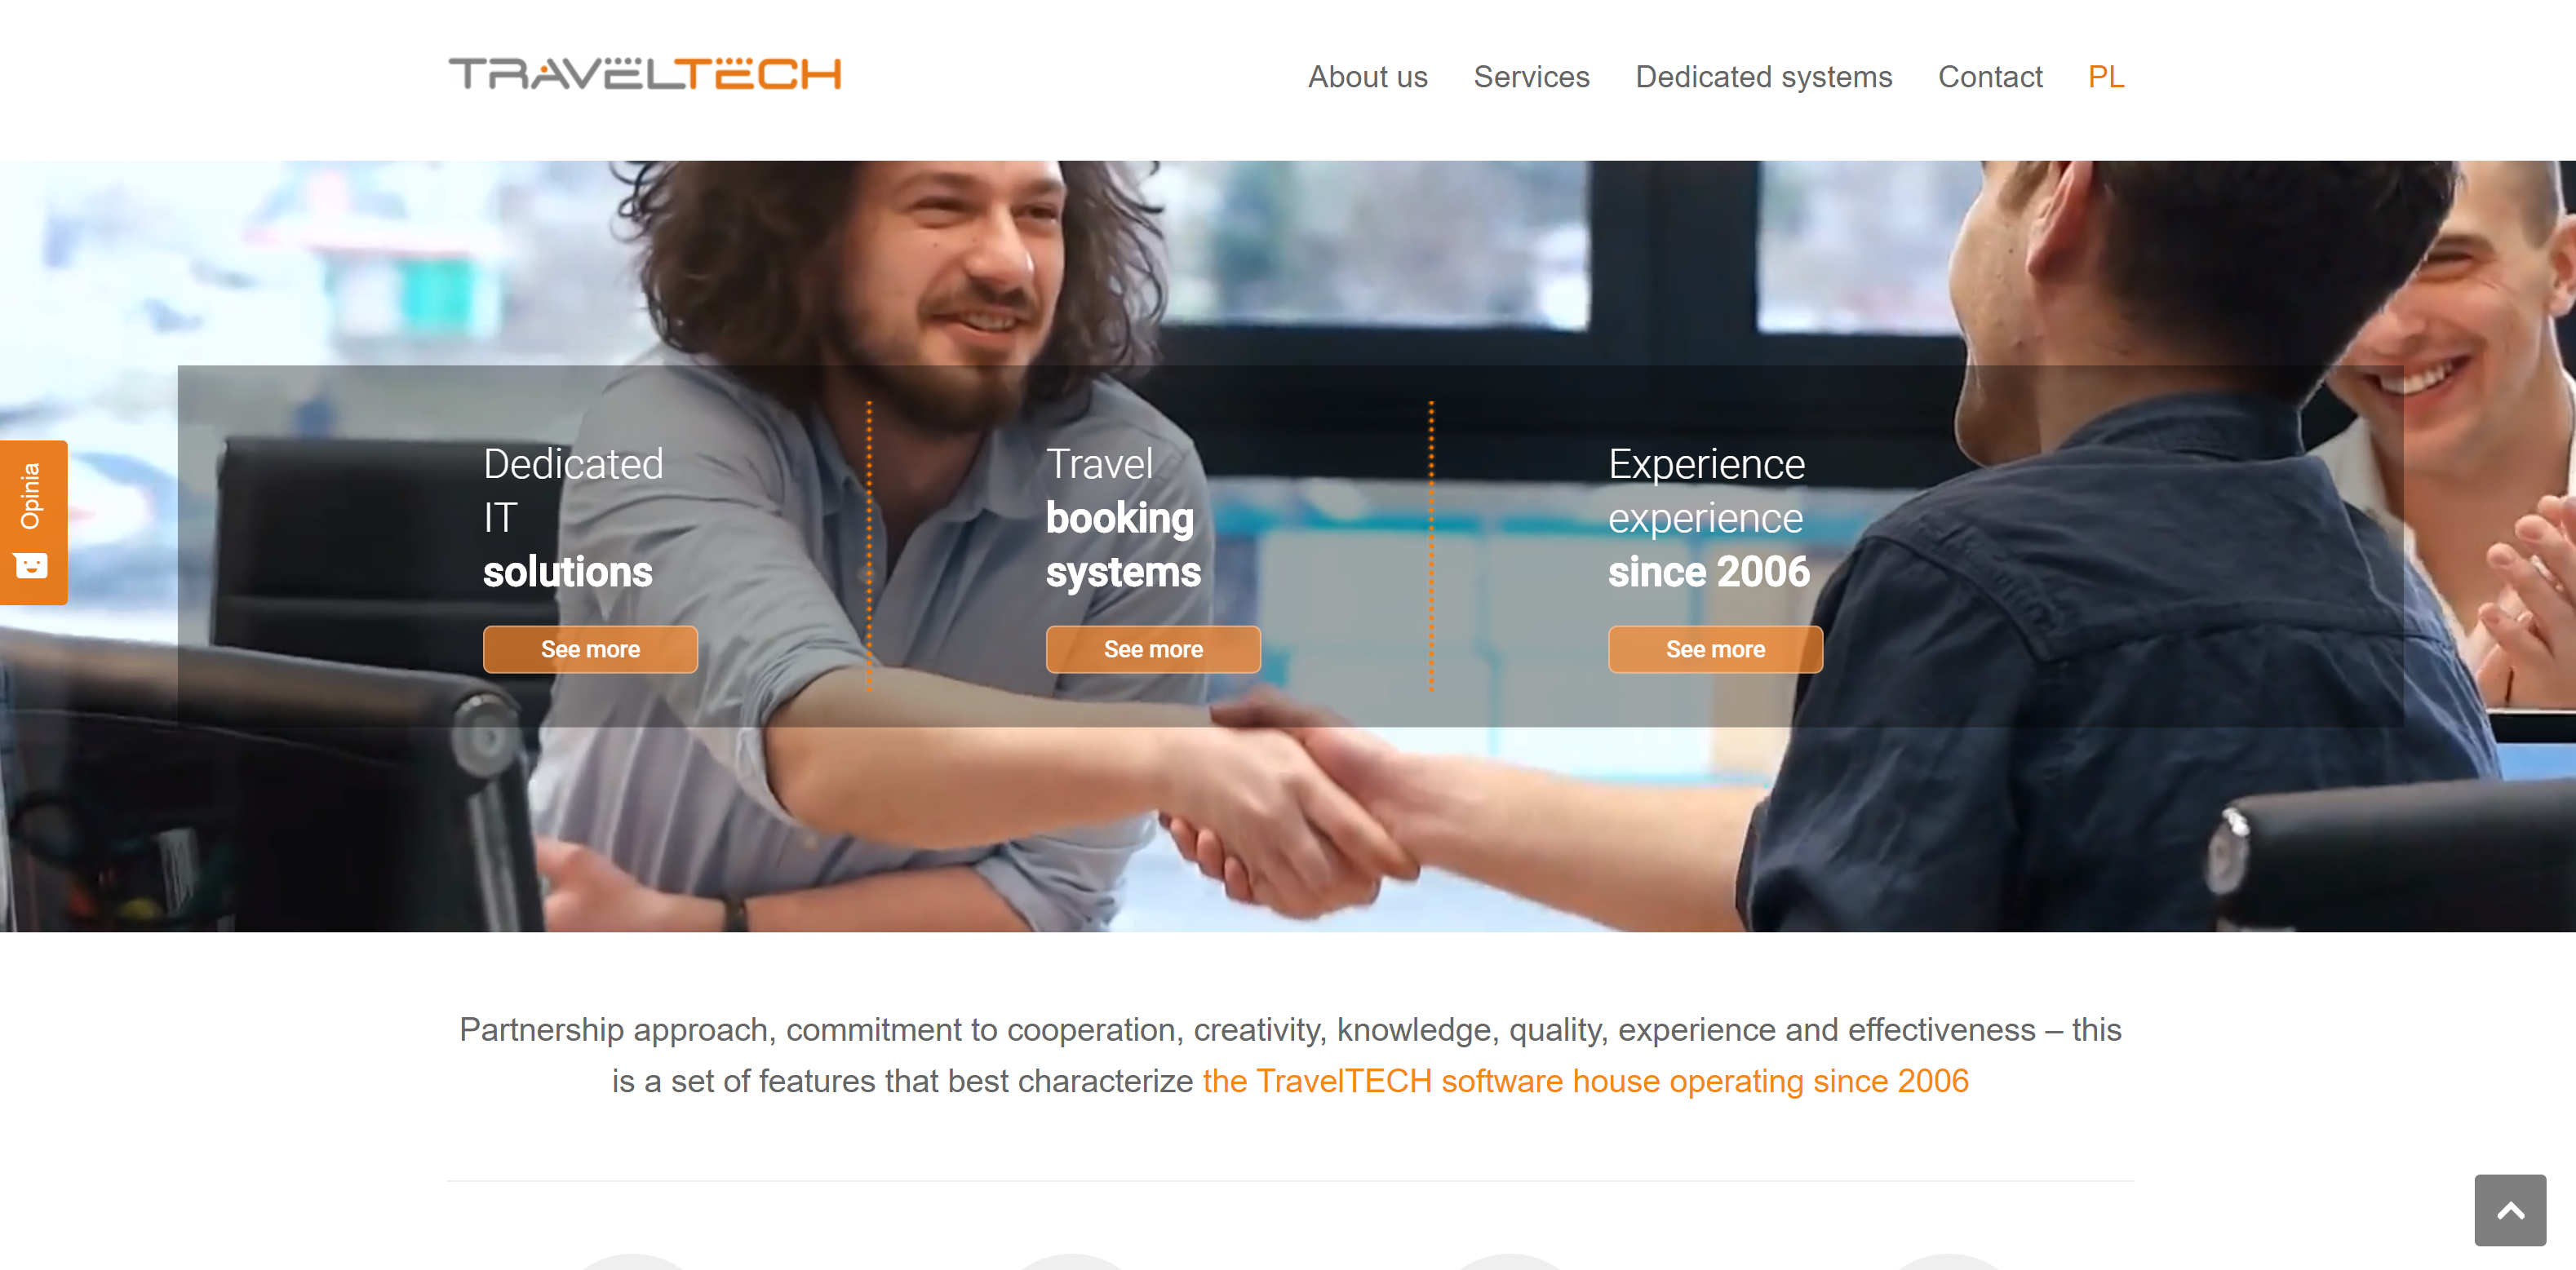 main page of TravelTECH website